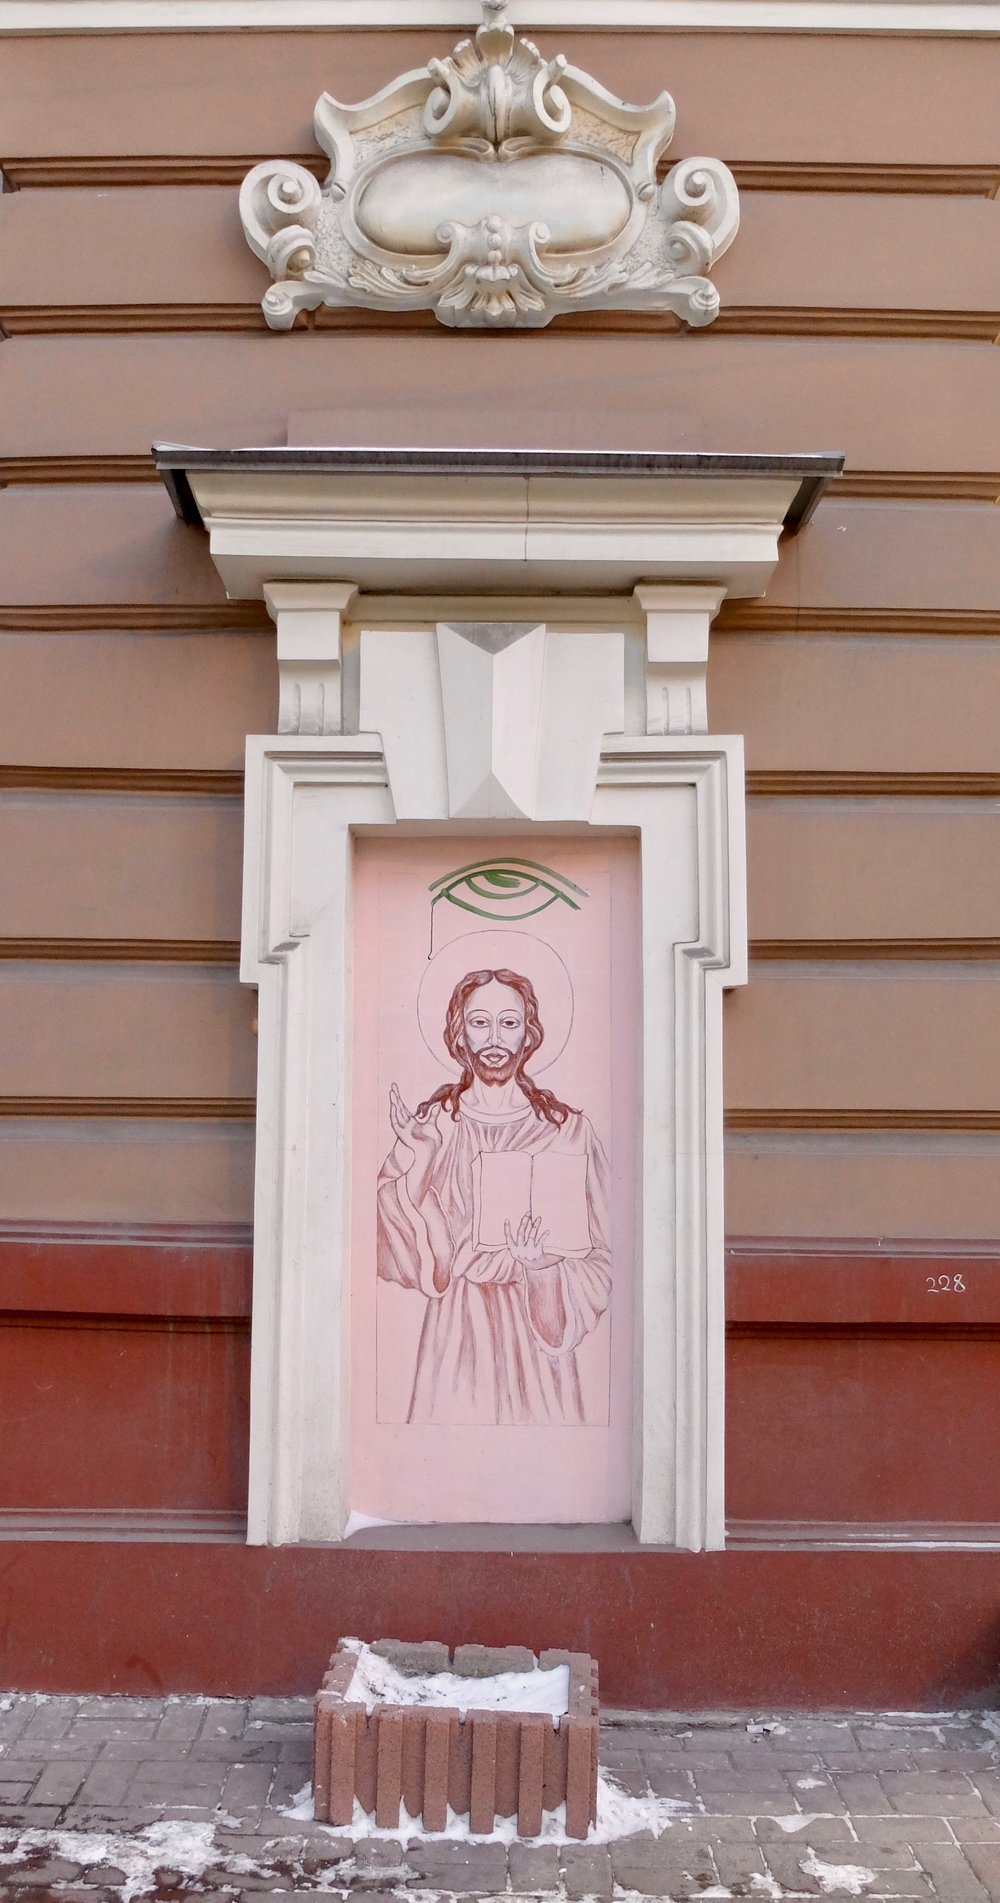 Irkutsk Graffiti Jesus would very much like everyone to just be kind.